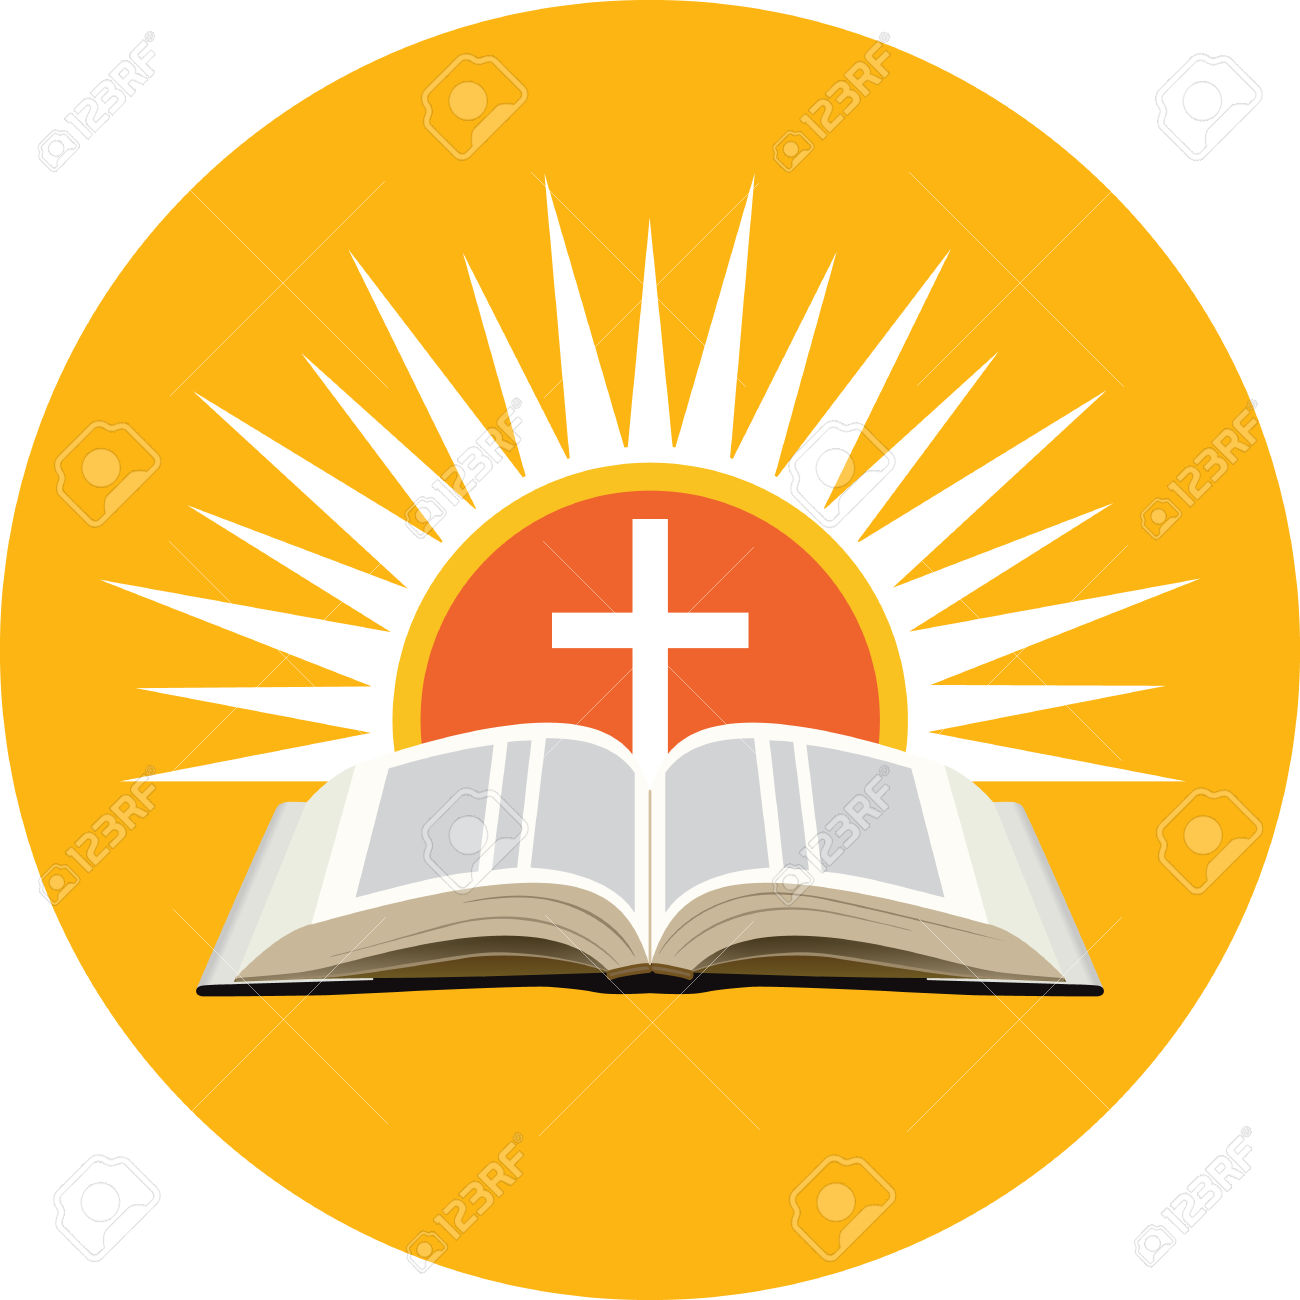 Bible, Sunset And Cross. Church Logo Concept. Icon In Orange.